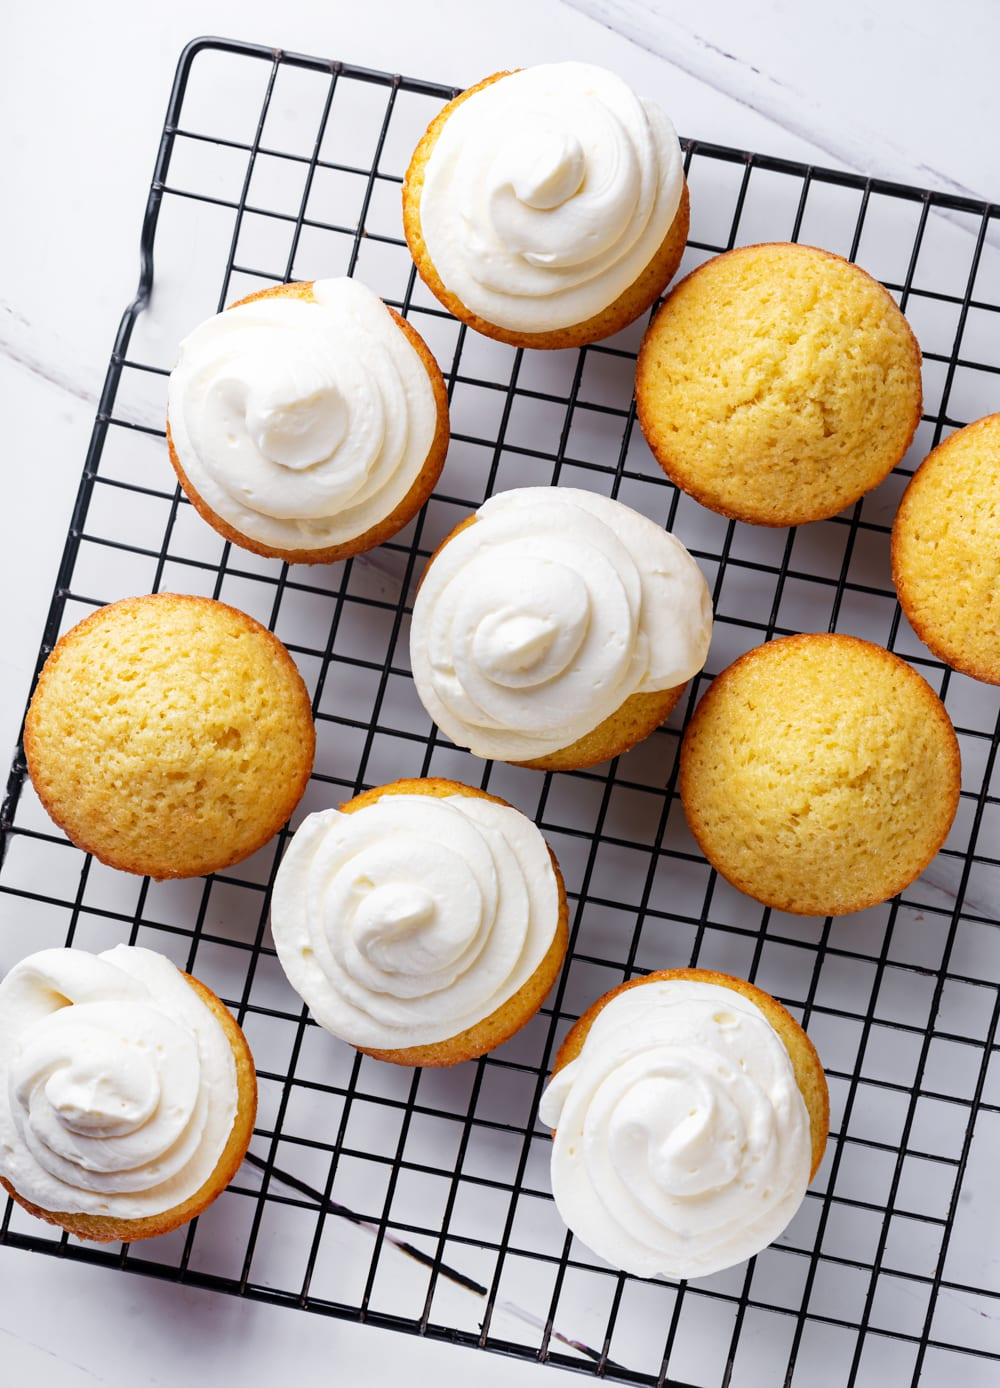 An overhead view of three unfrosted keto vanilla cupcakes and six cream cheese frosted keto vanilla cupcakes. The cupcakes are on a wire rack which is on white counter.